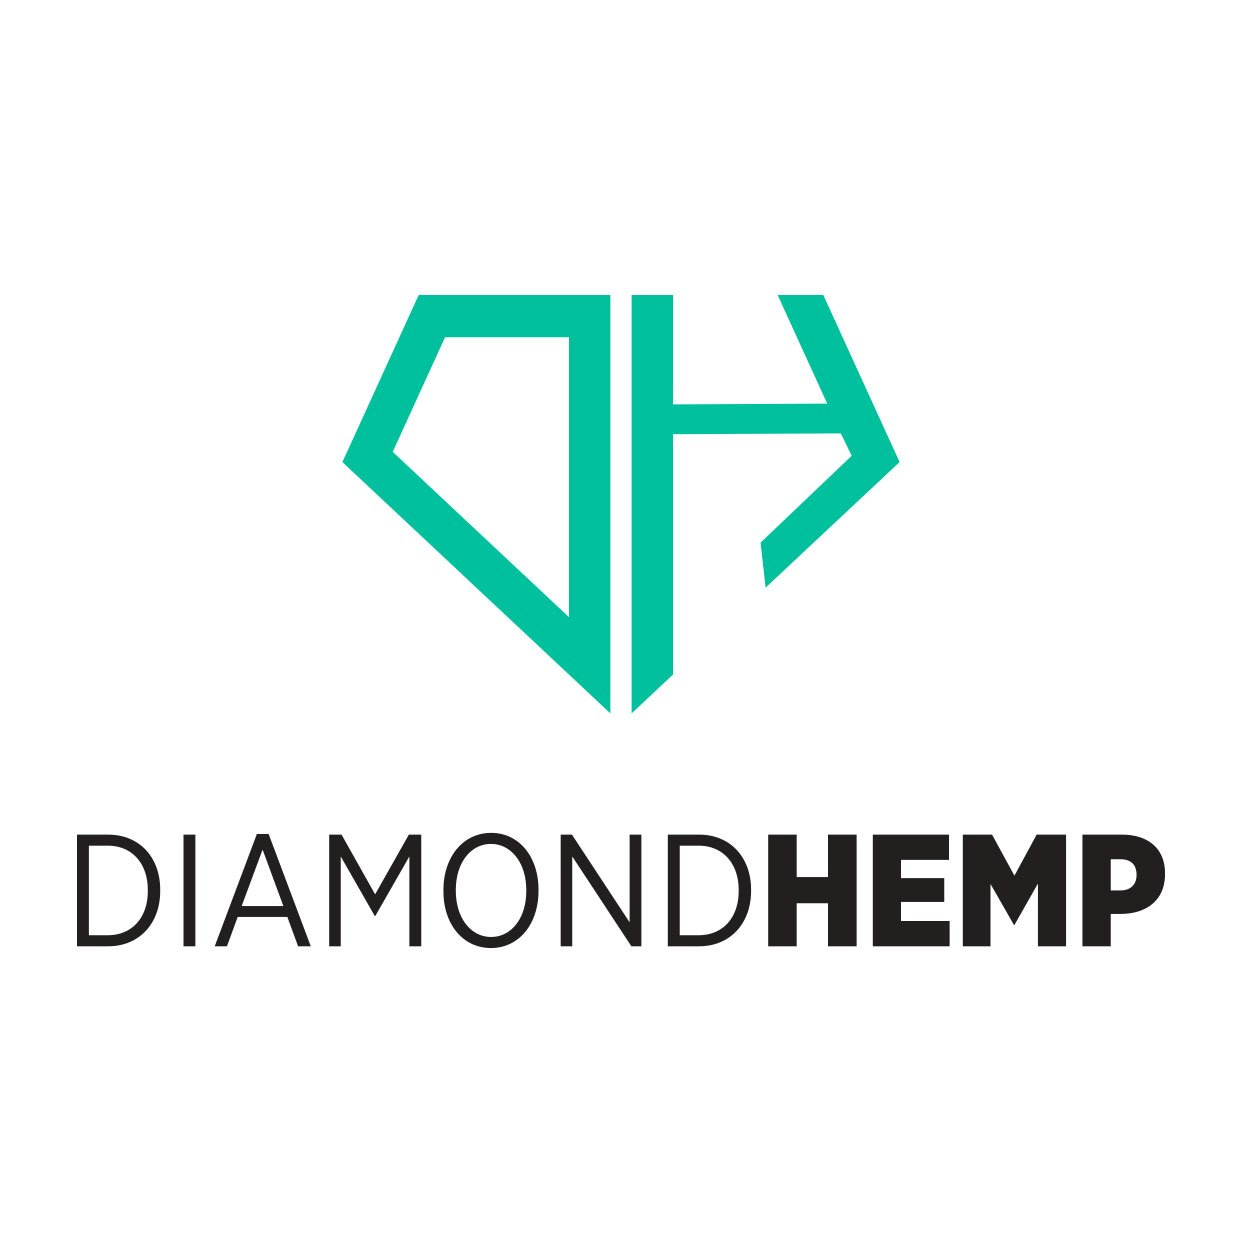 Diamond Hemp